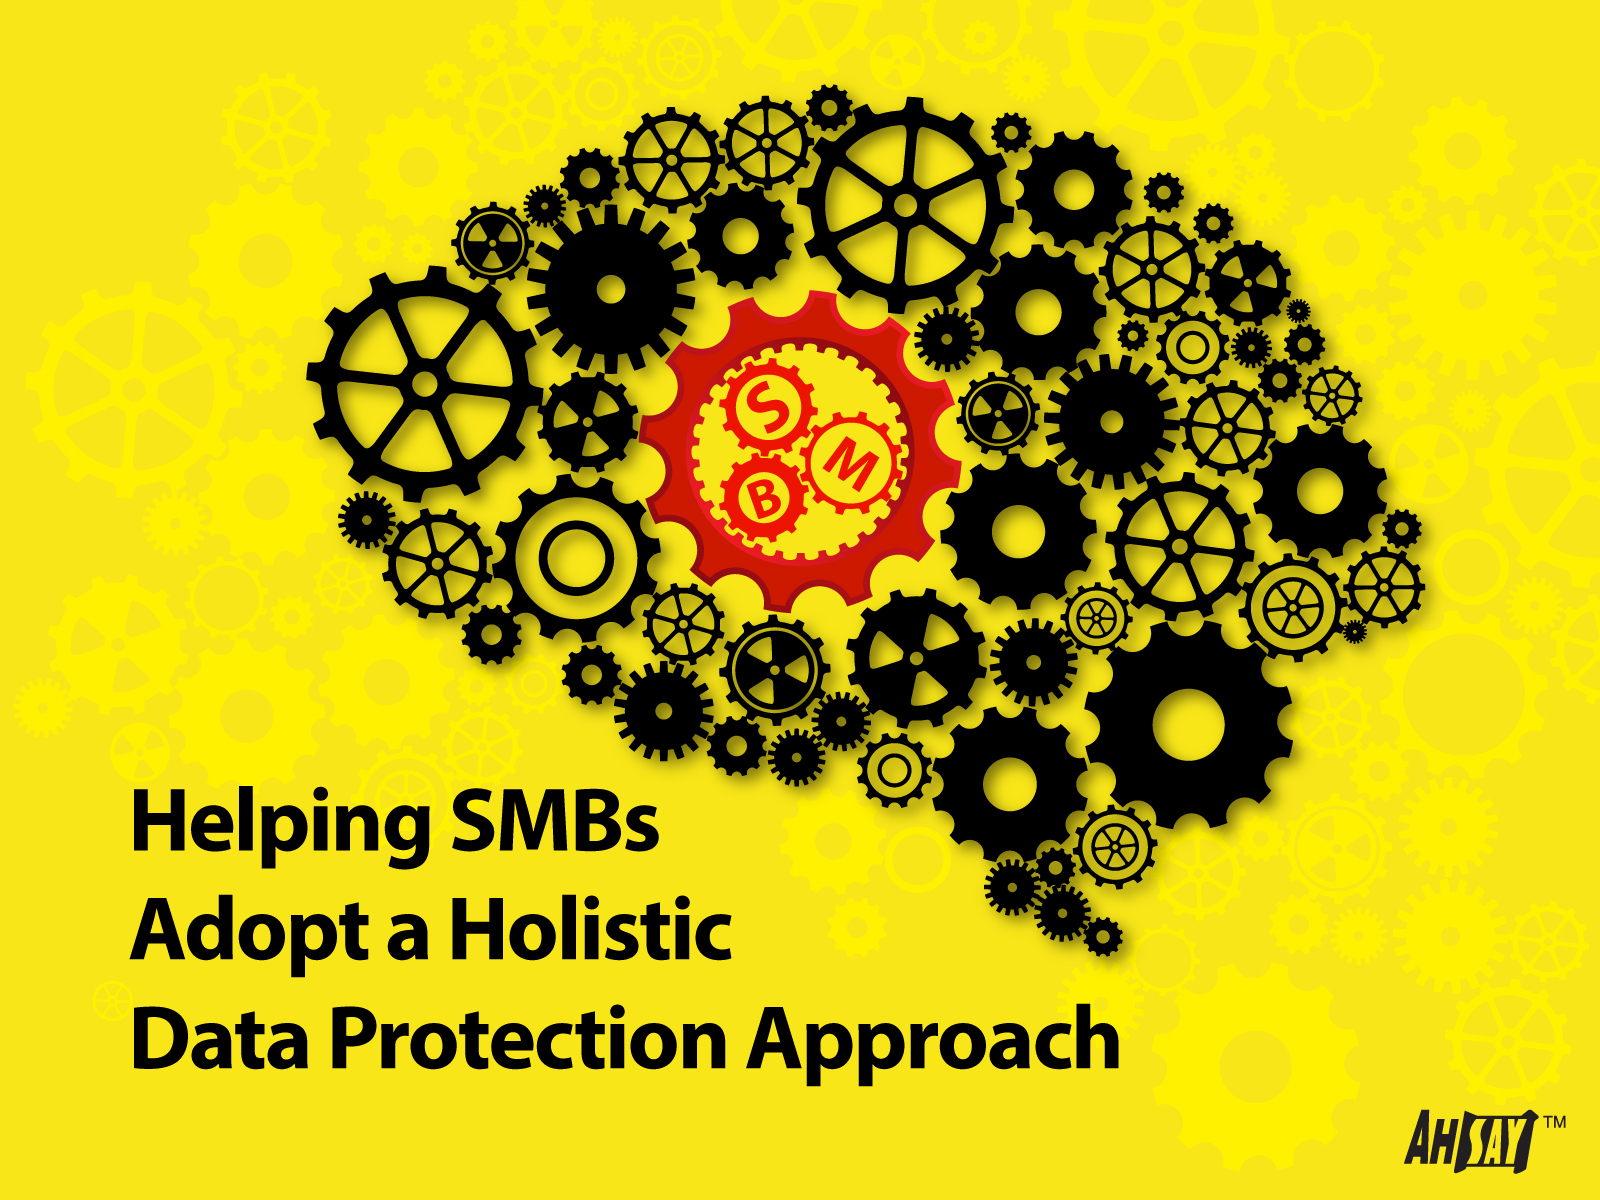 Helping-SMBs-Adopt-a-Holistic-Data-Protection-Approach